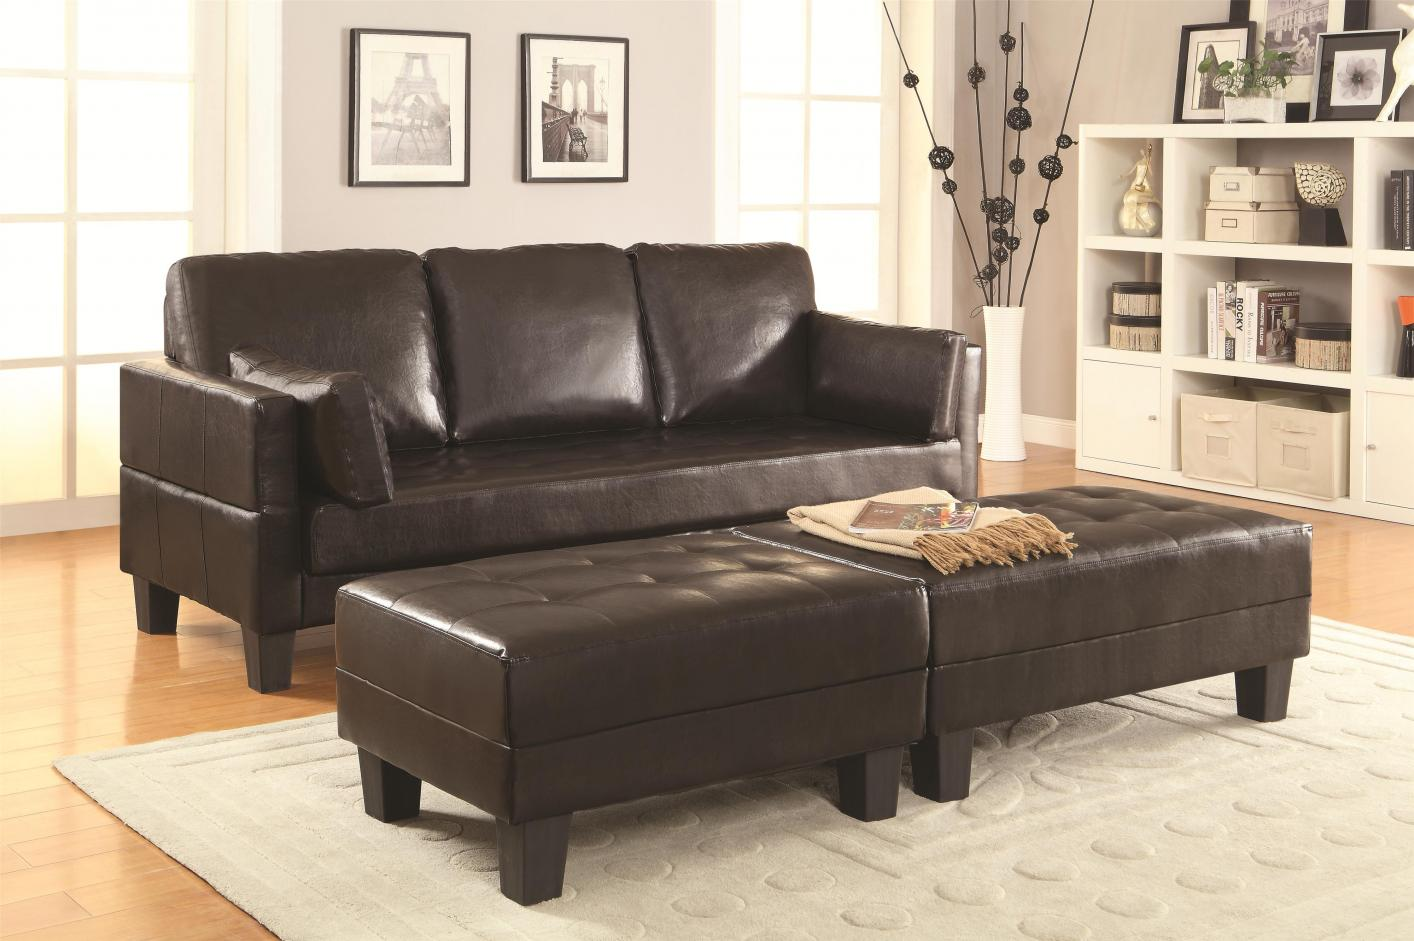 ... Brown Leather Sofa Bed and Ottoman Set ...